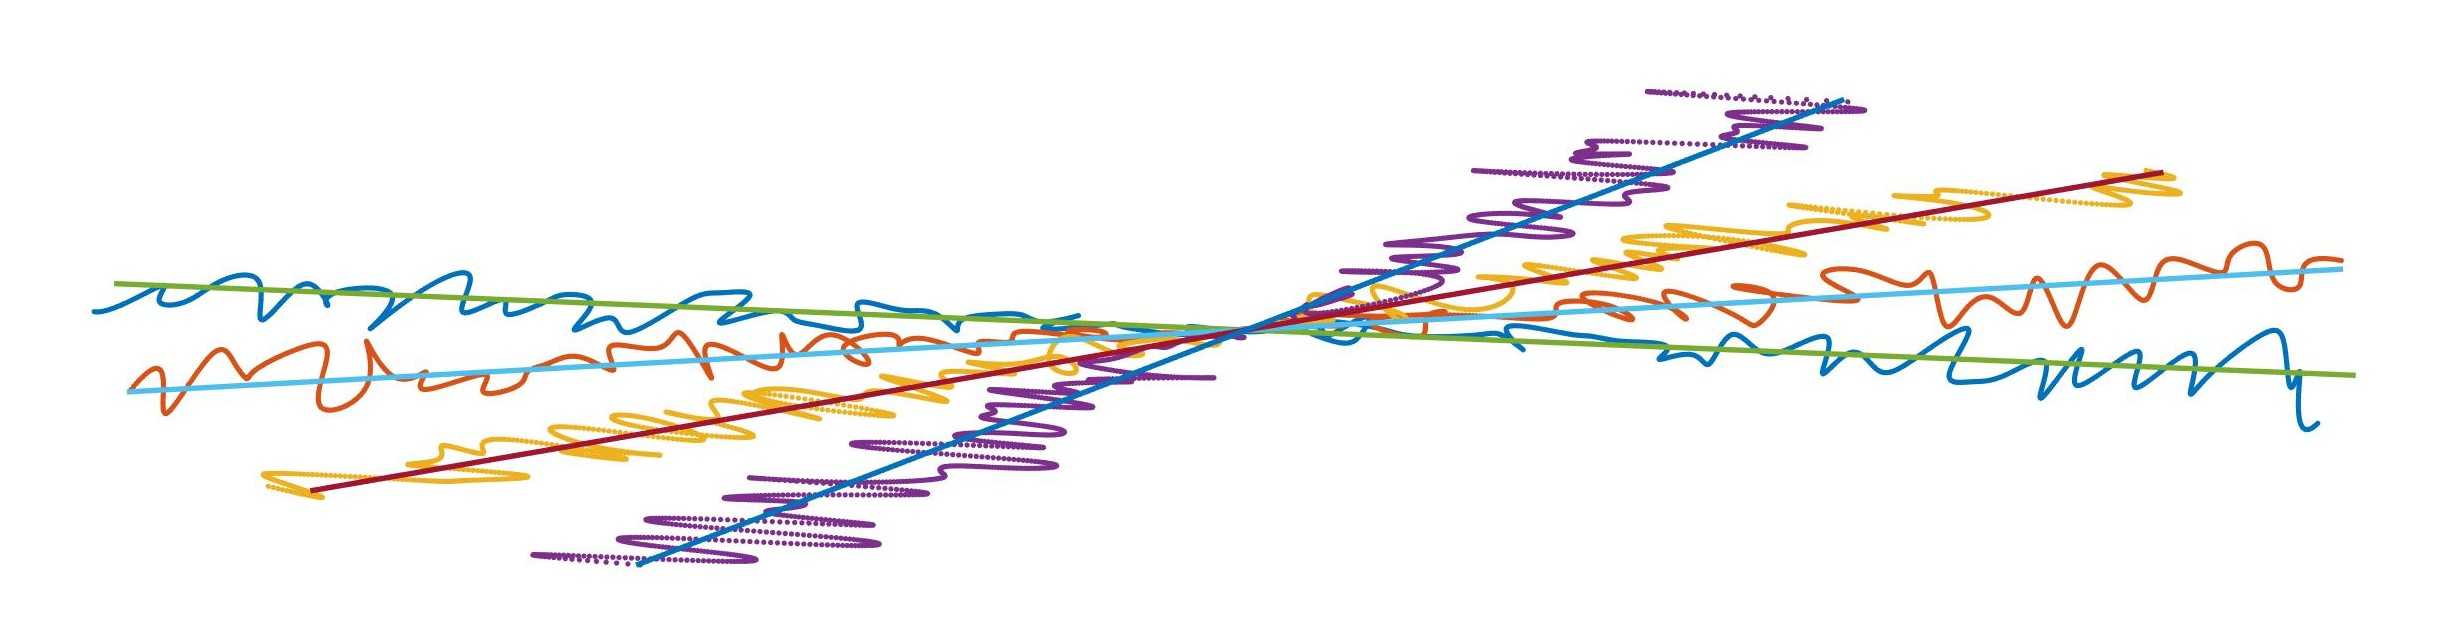 Compared above are three trajectories initialized using stack-of-stars. From left to right are: fixed trajectory; 4 shots of learned SOS 2D trajectories; 4 corresponding shots of learned SOS 3D trajectories. Note that the right most trajectory is actually 3D and that all the trajectories obey the MR physical constraints.